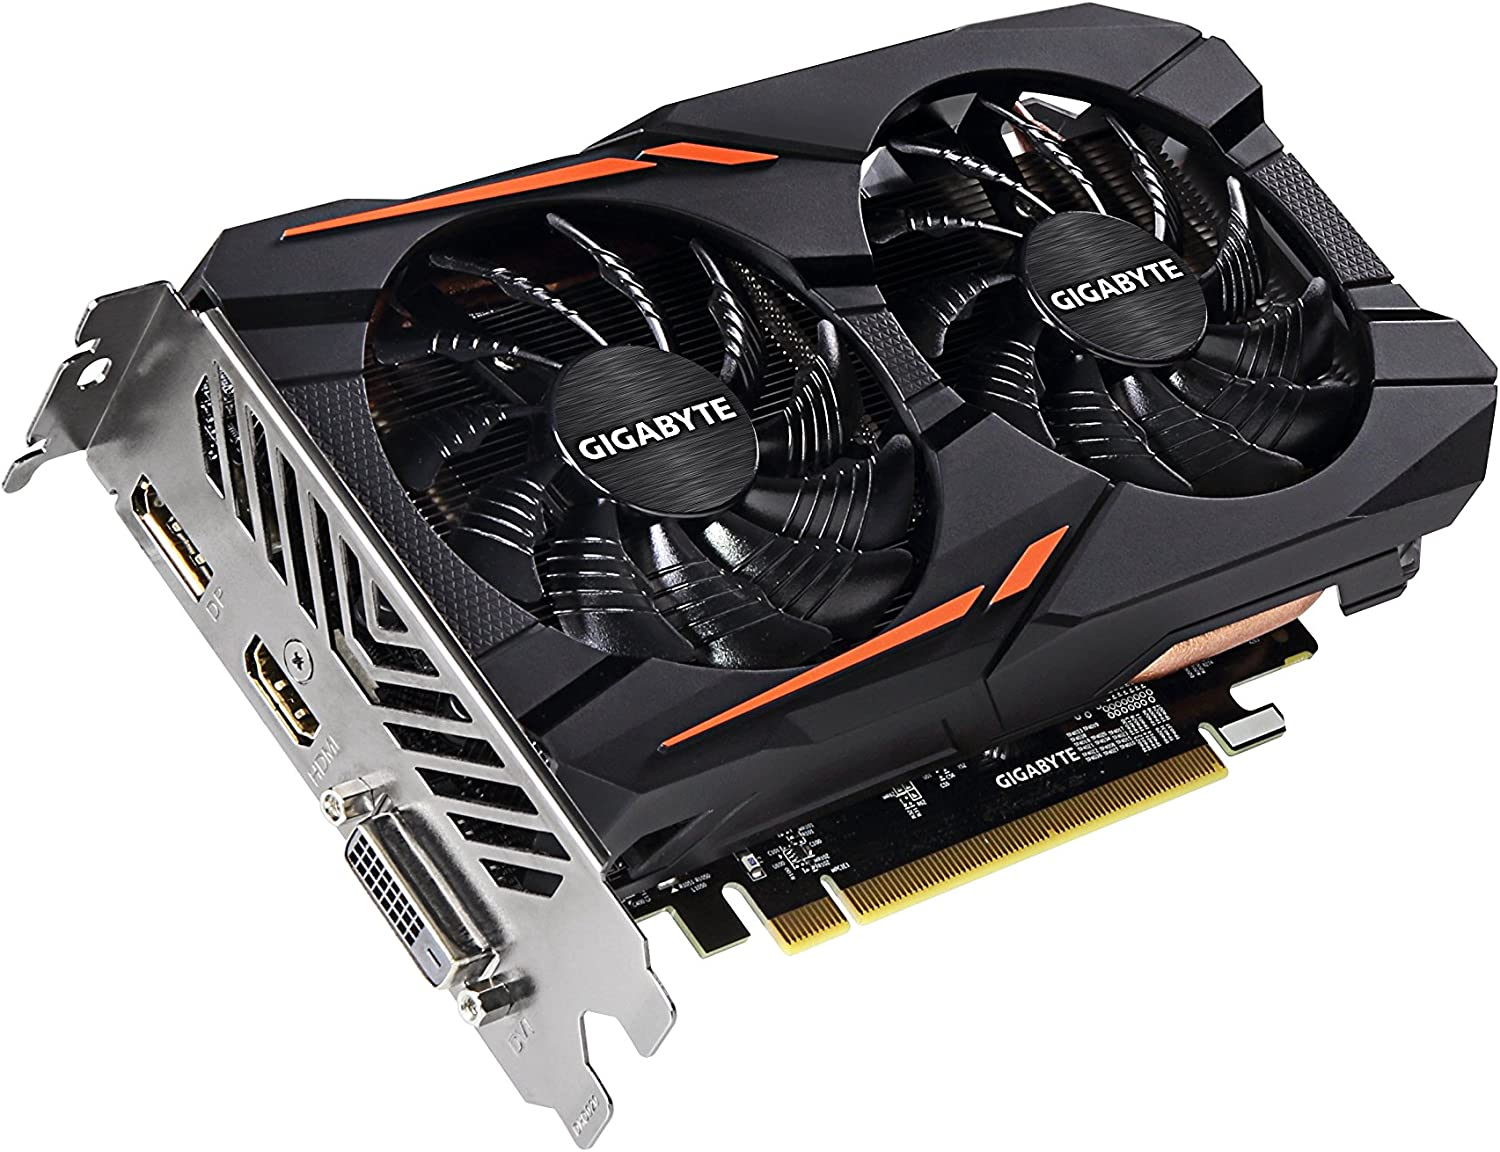 Gigabyte GIGABYTE Radeon RX 560 Gaming OC 4GB Graphic Cards GV-RX560GAMING OC-4GD